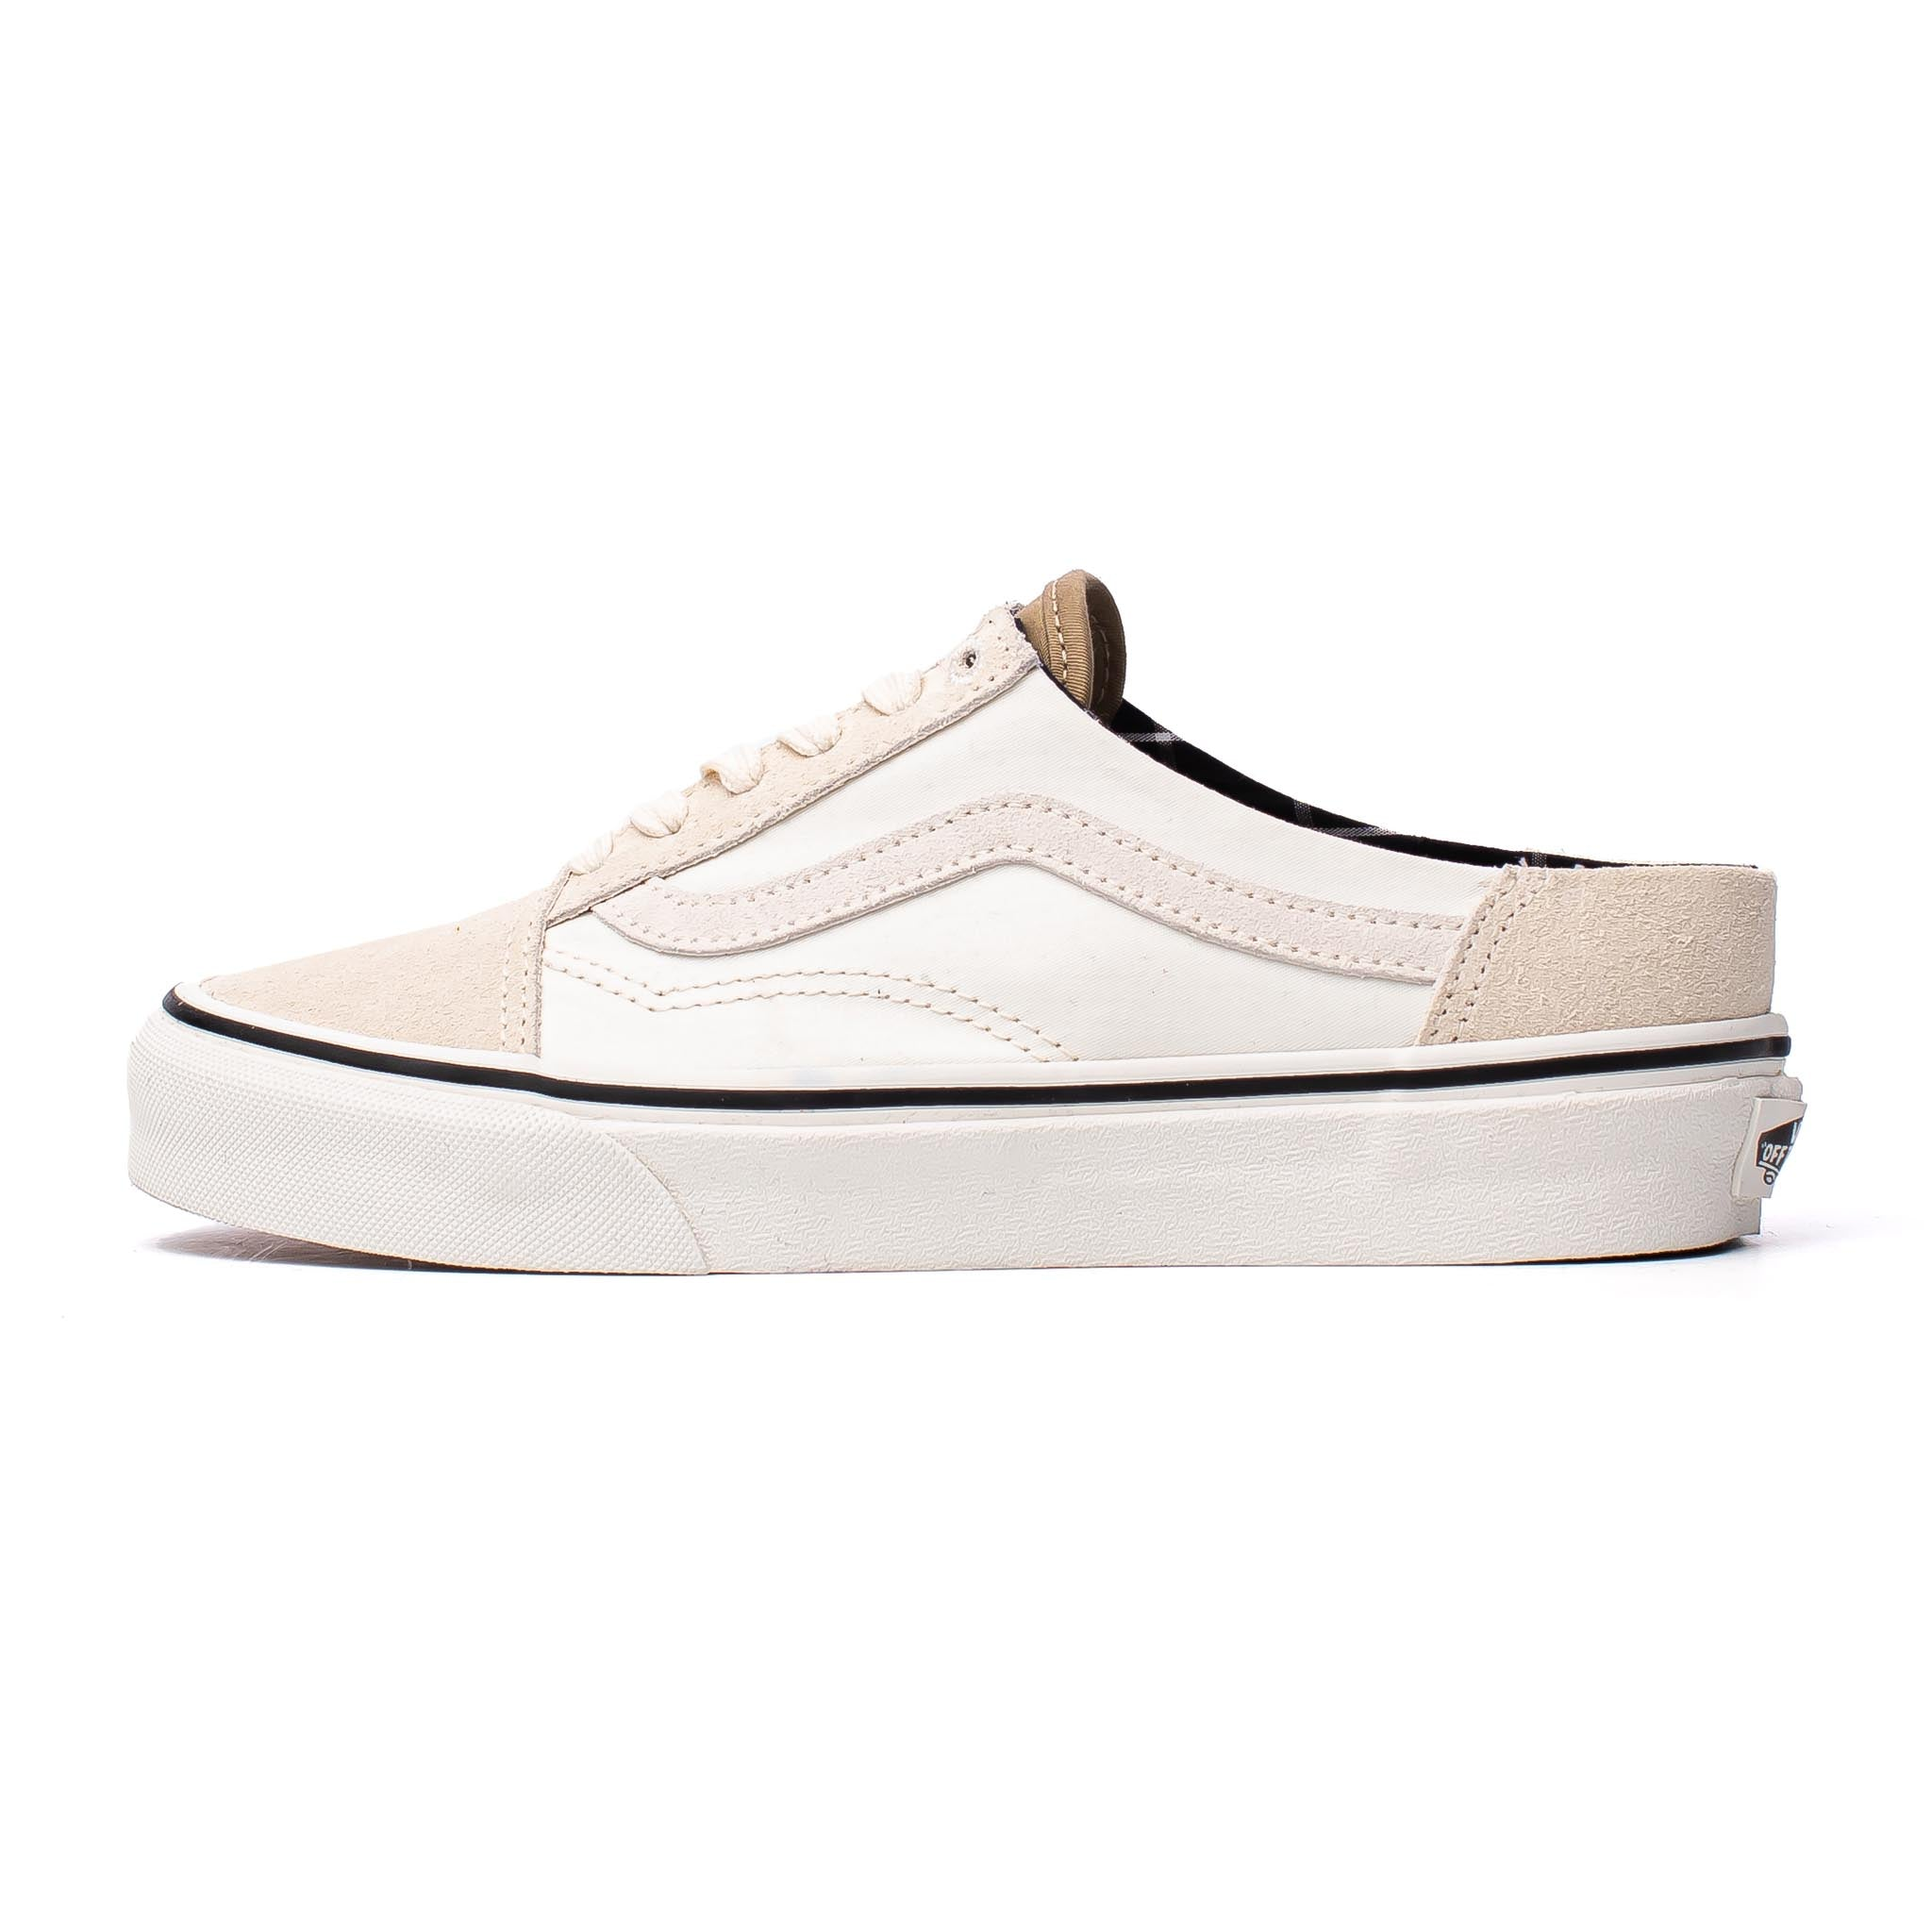 Vans Old Skool Mule White